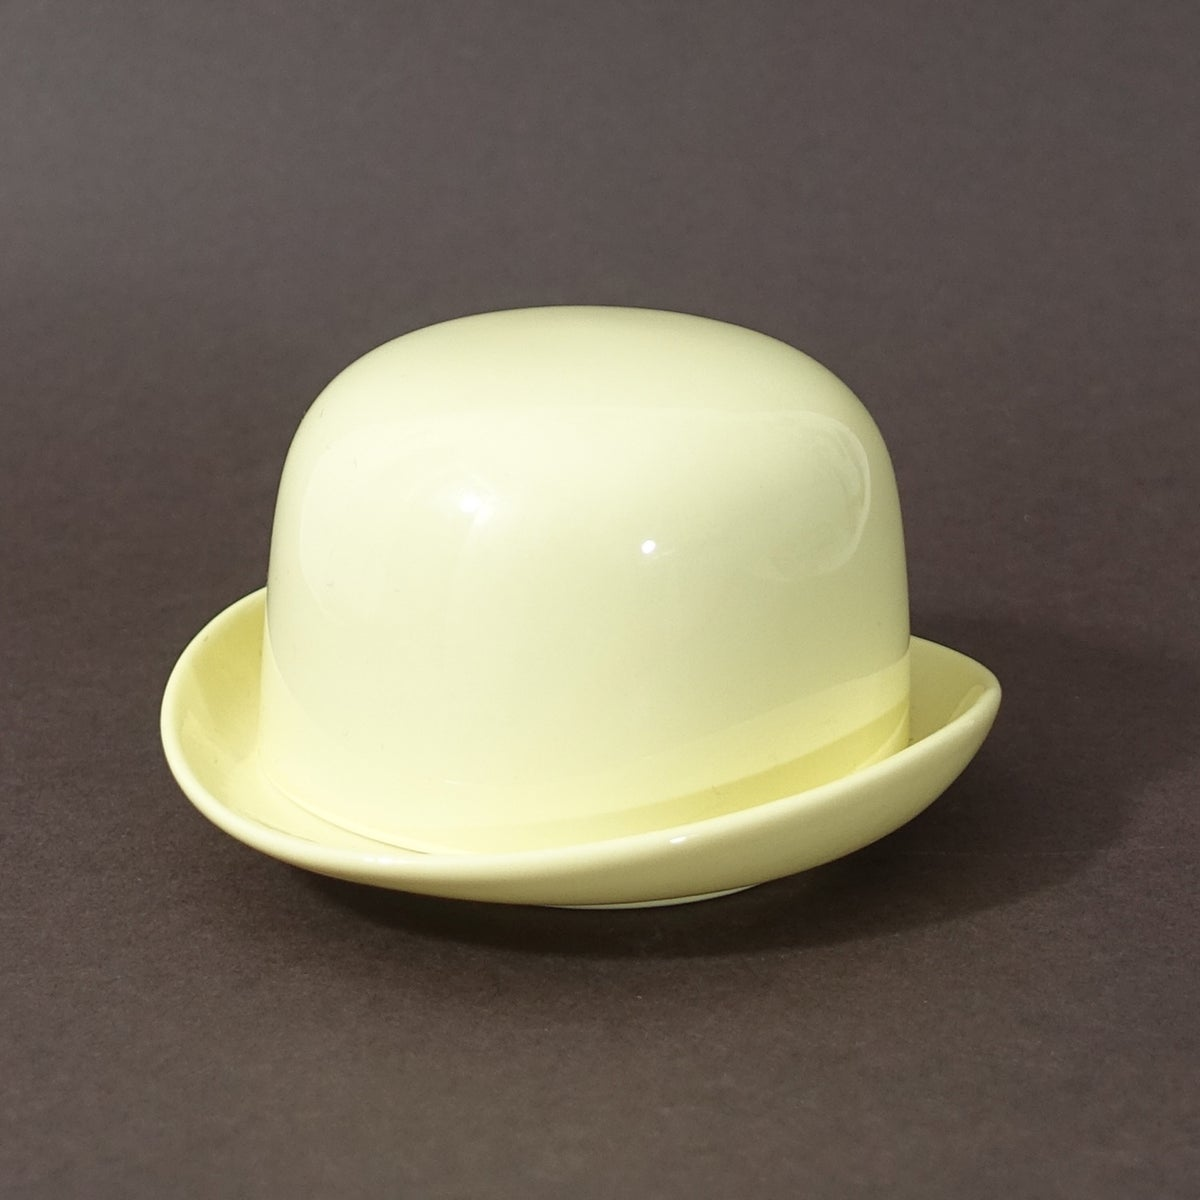 Image of Thomson & Thompson Yellow Sugar Bowl - Limited edition!